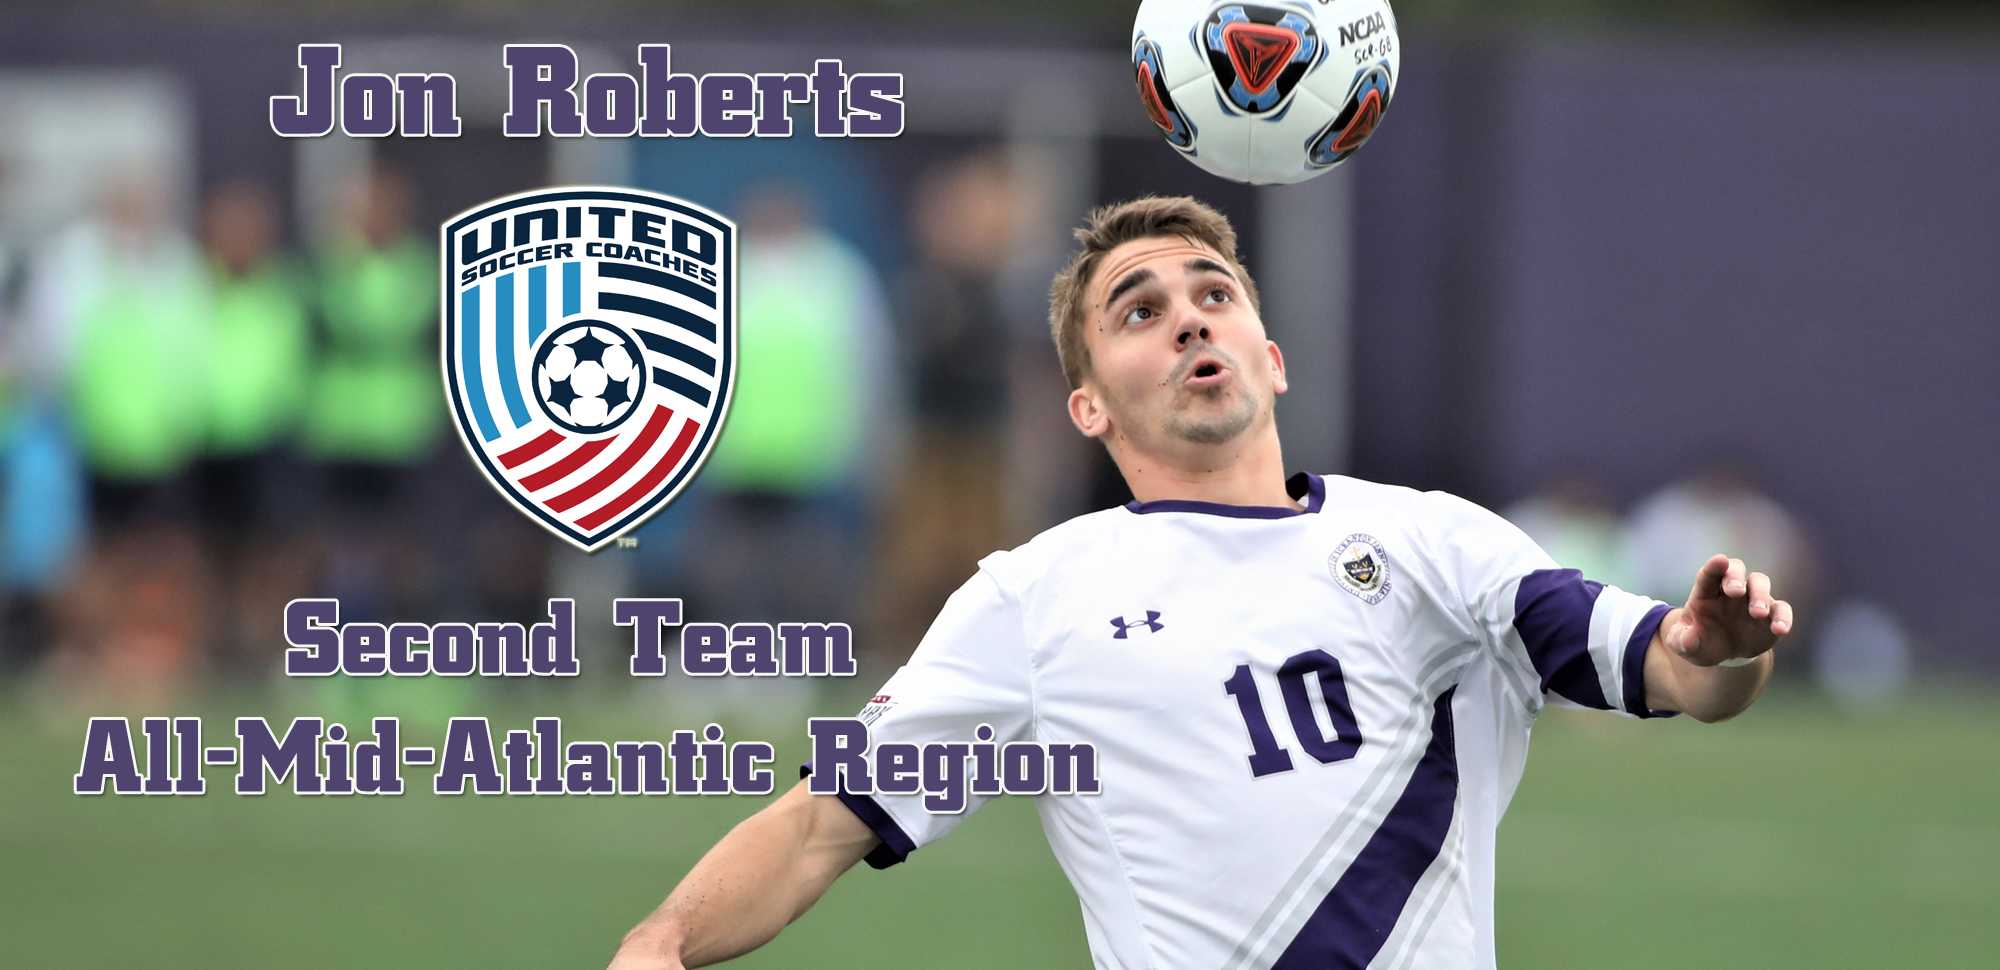 Senior Jon Roberts earned All-Region Honors for the second consecutive year as announced by United Soccer Coaches on Monday afternoon.